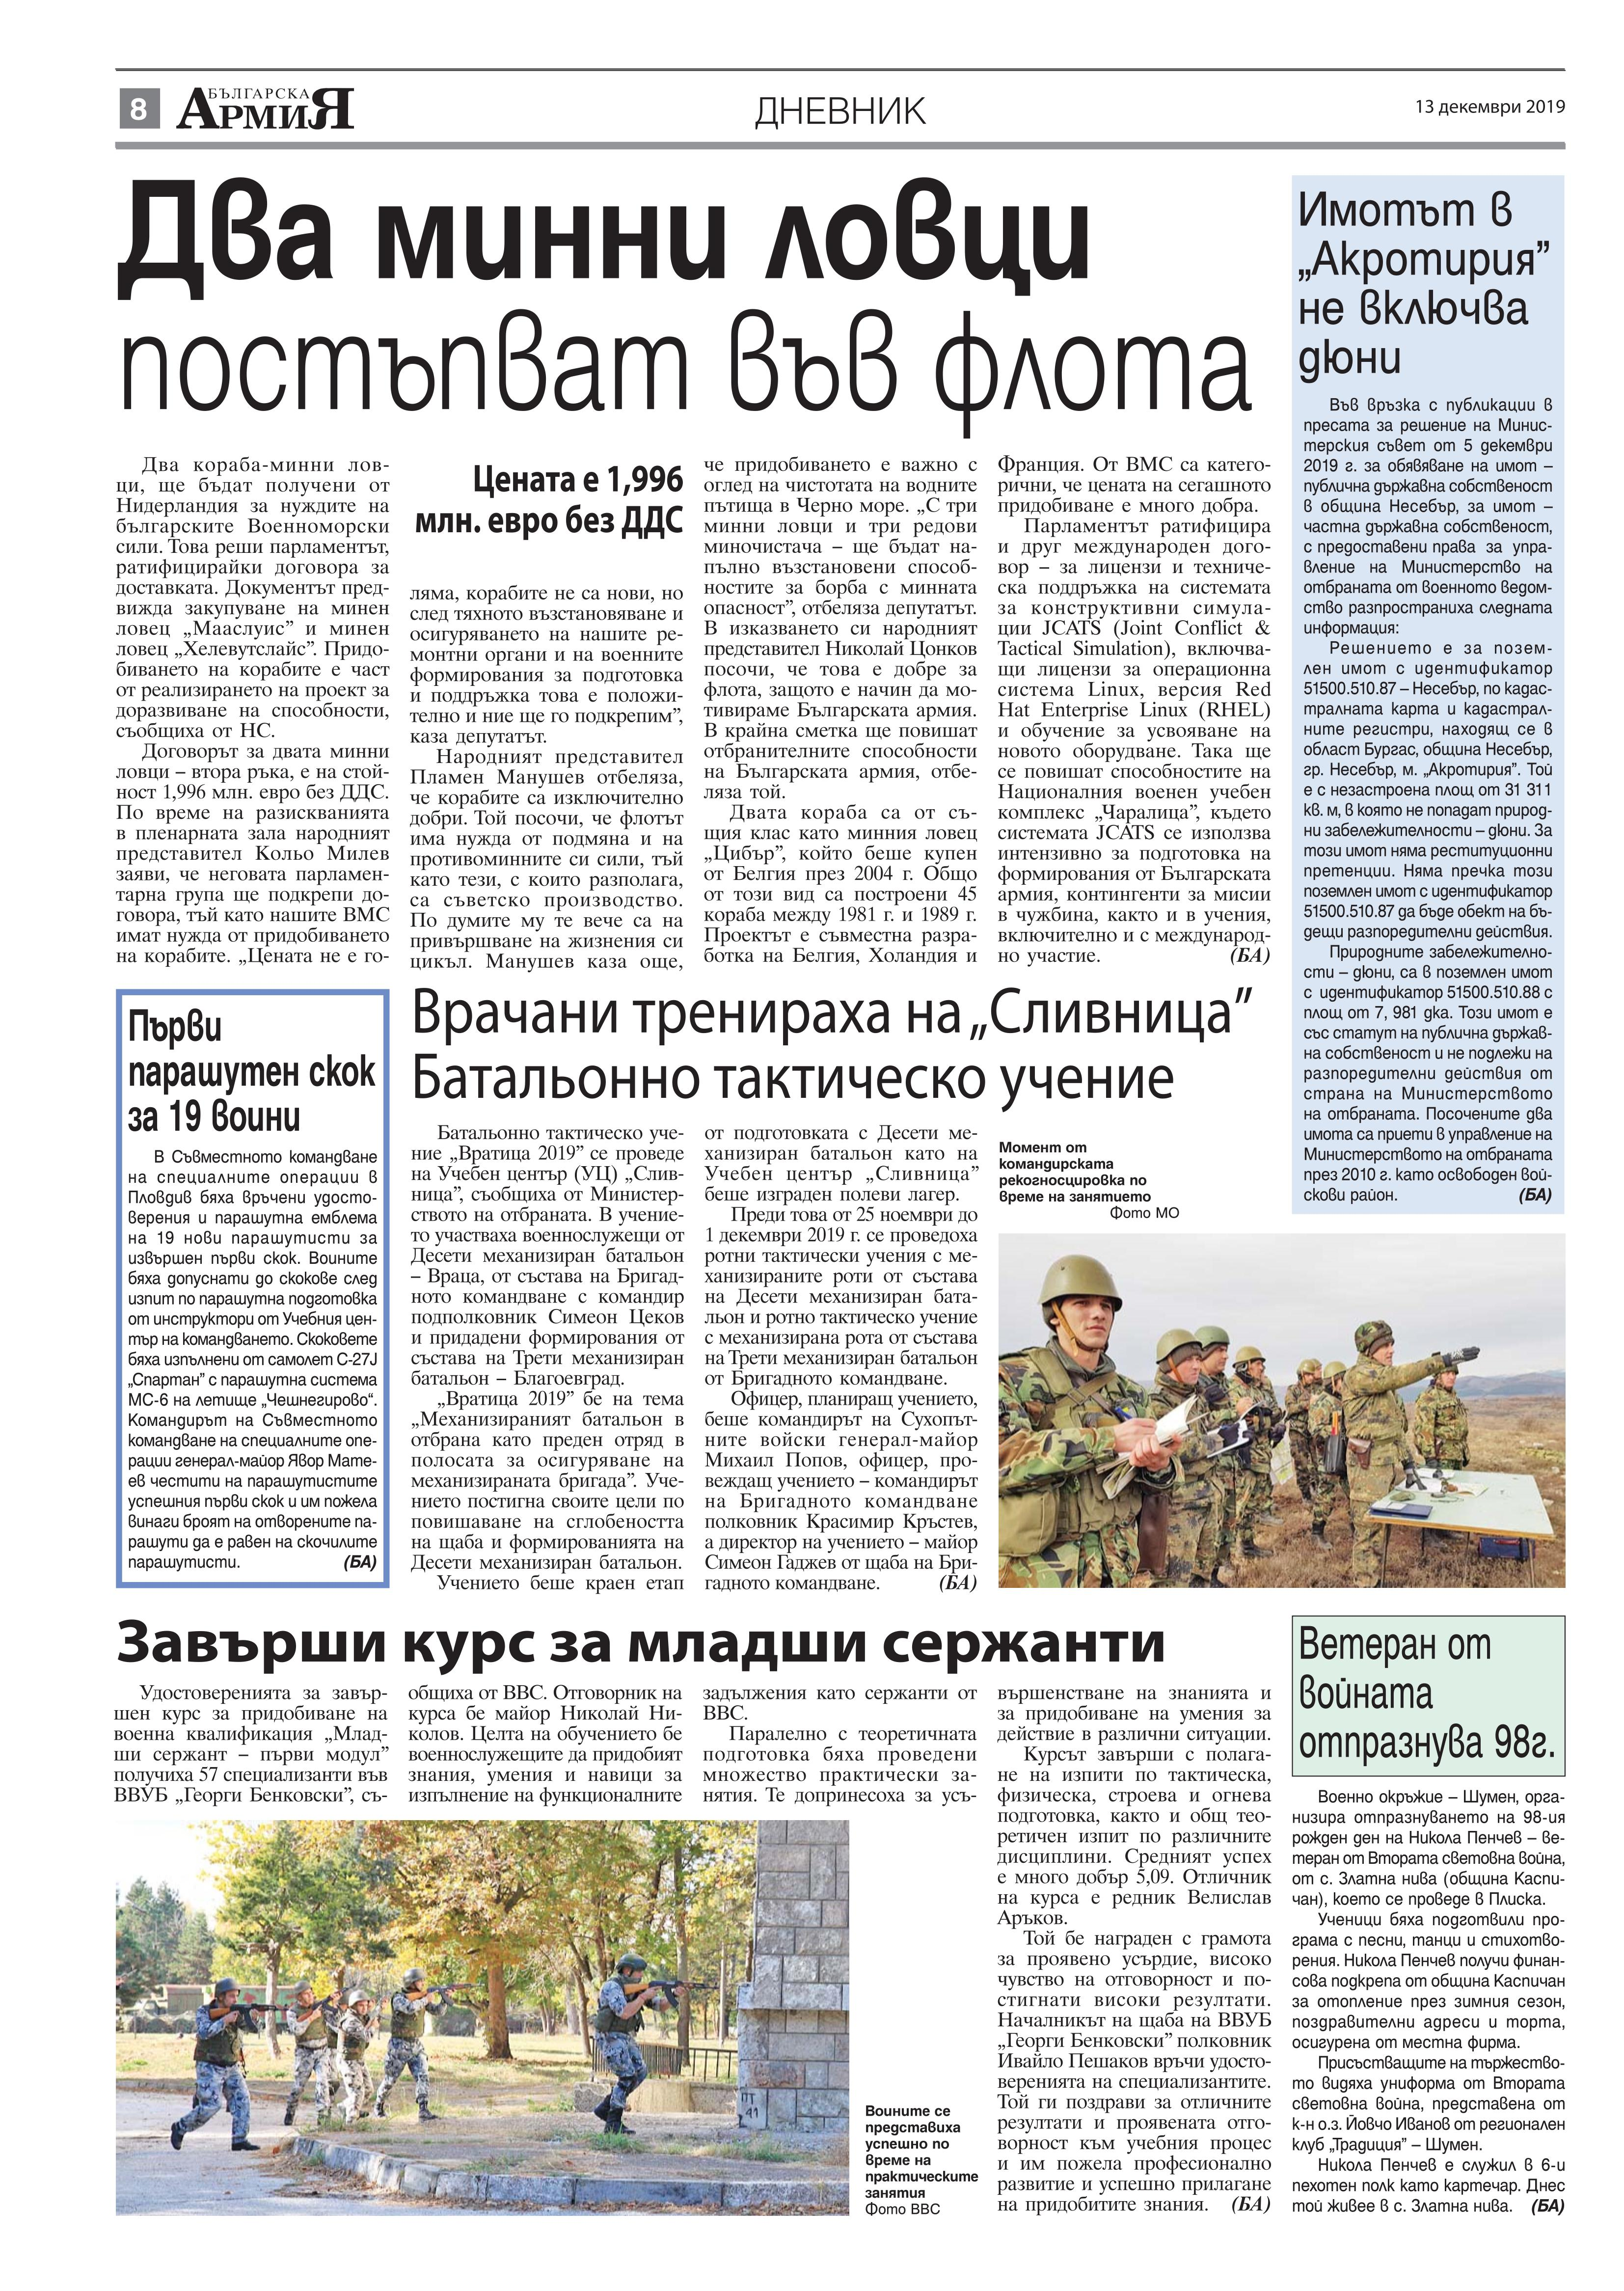 https://www.armymedia.bg/wp-content/uploads/2015/06/08.page1_-116.jpg